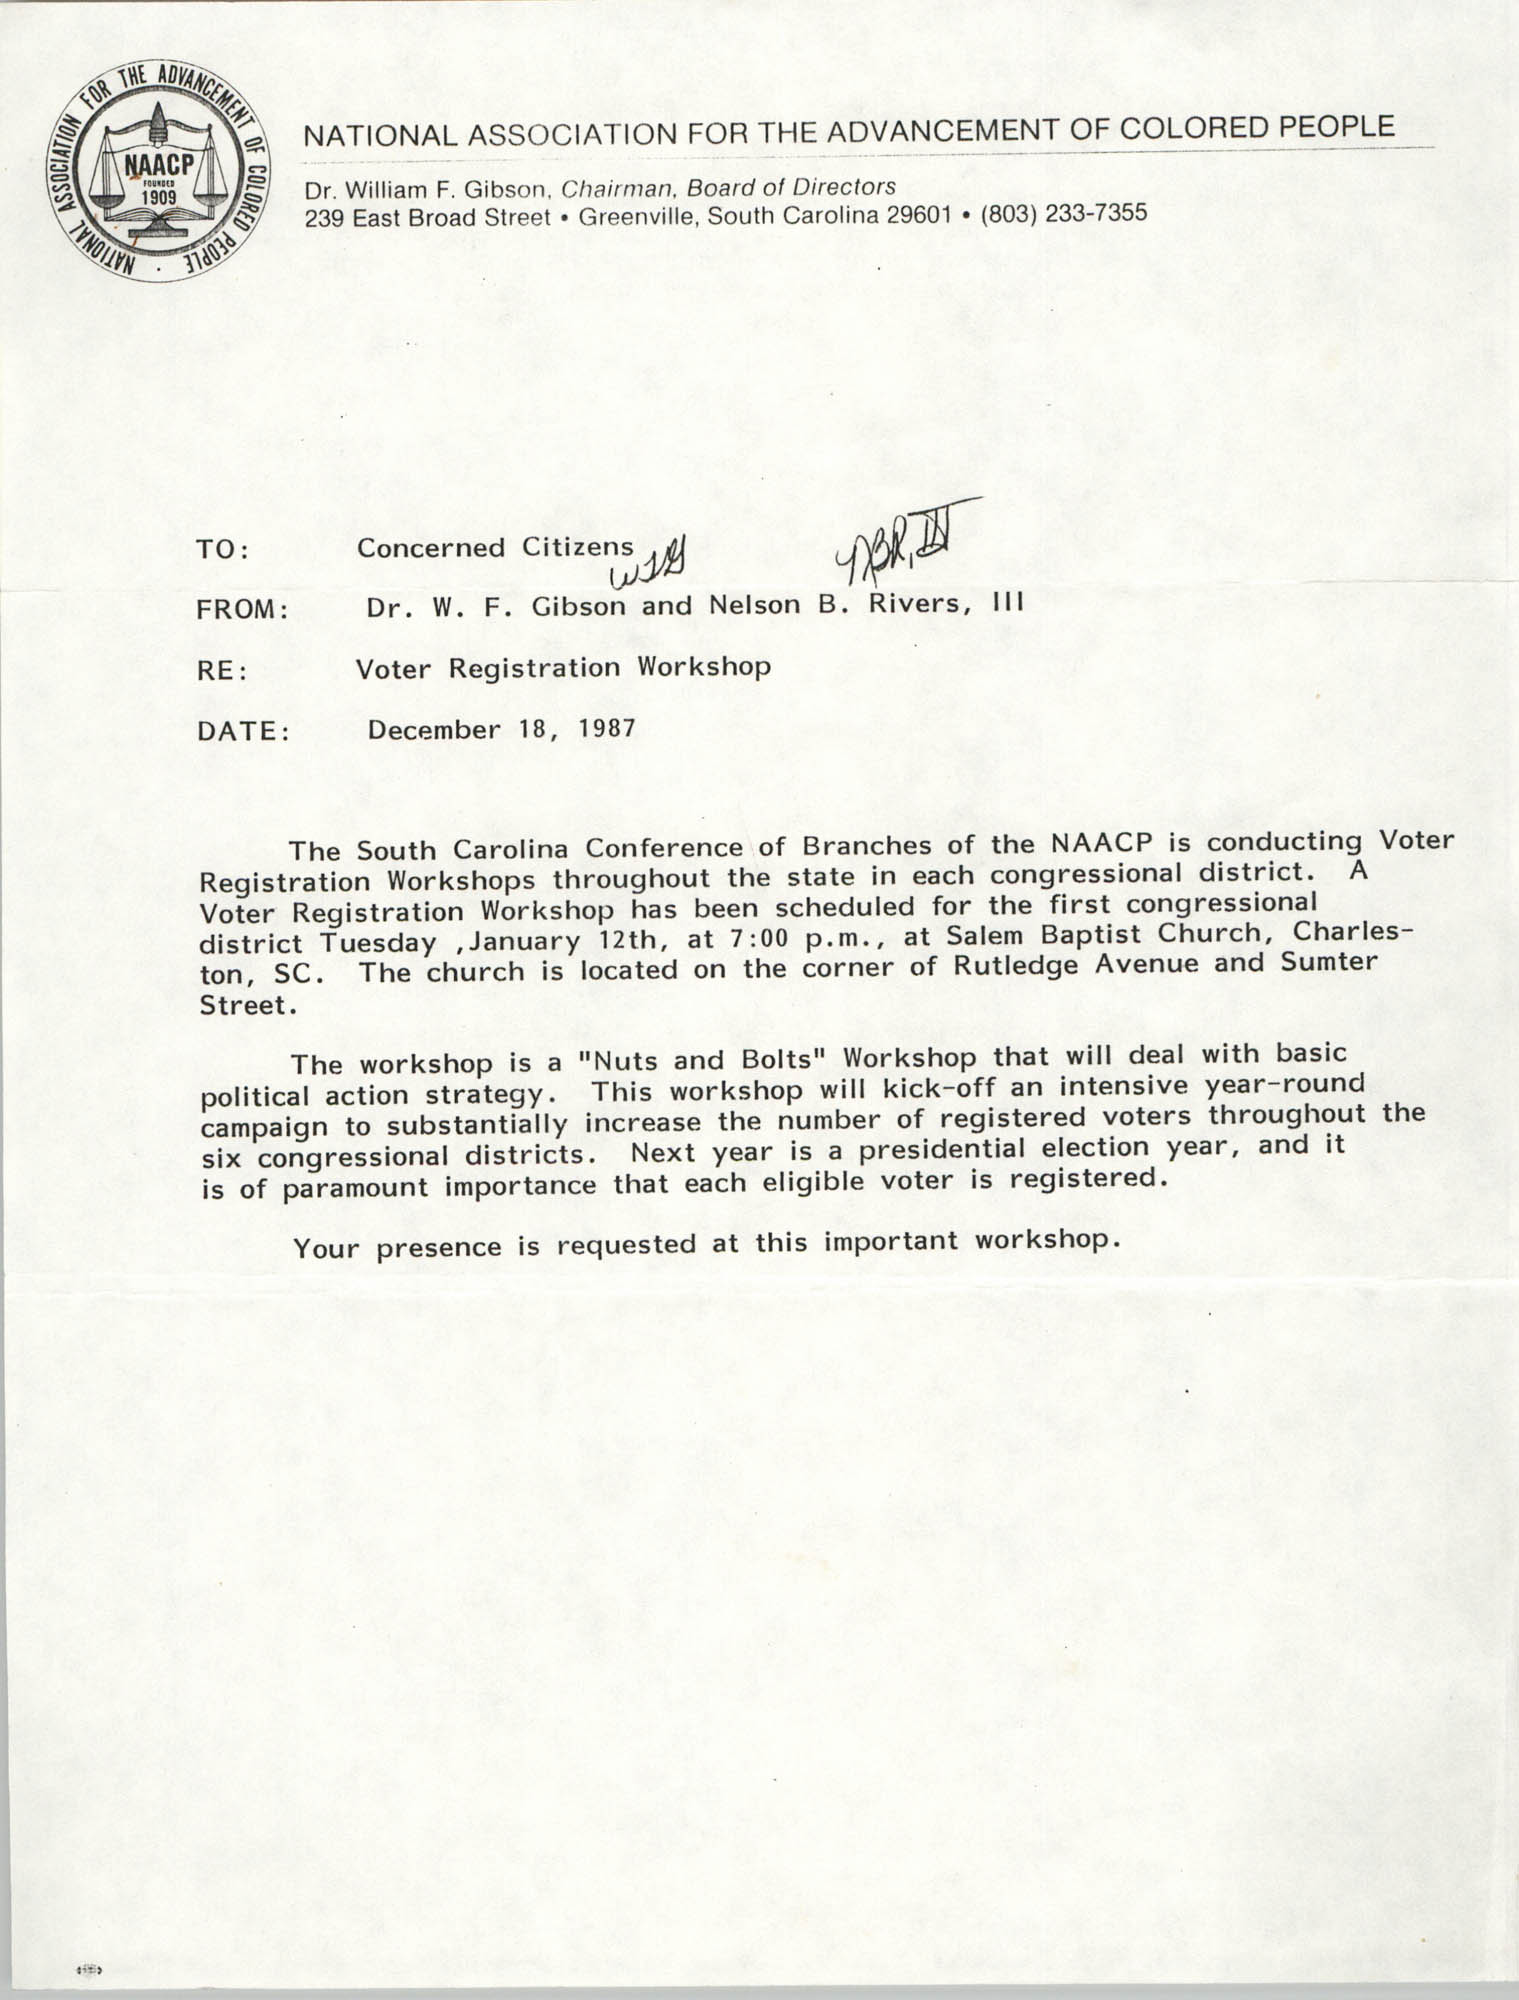 South Carolina Conference of Branches of the NAACP Memorandum, December 18, 1987